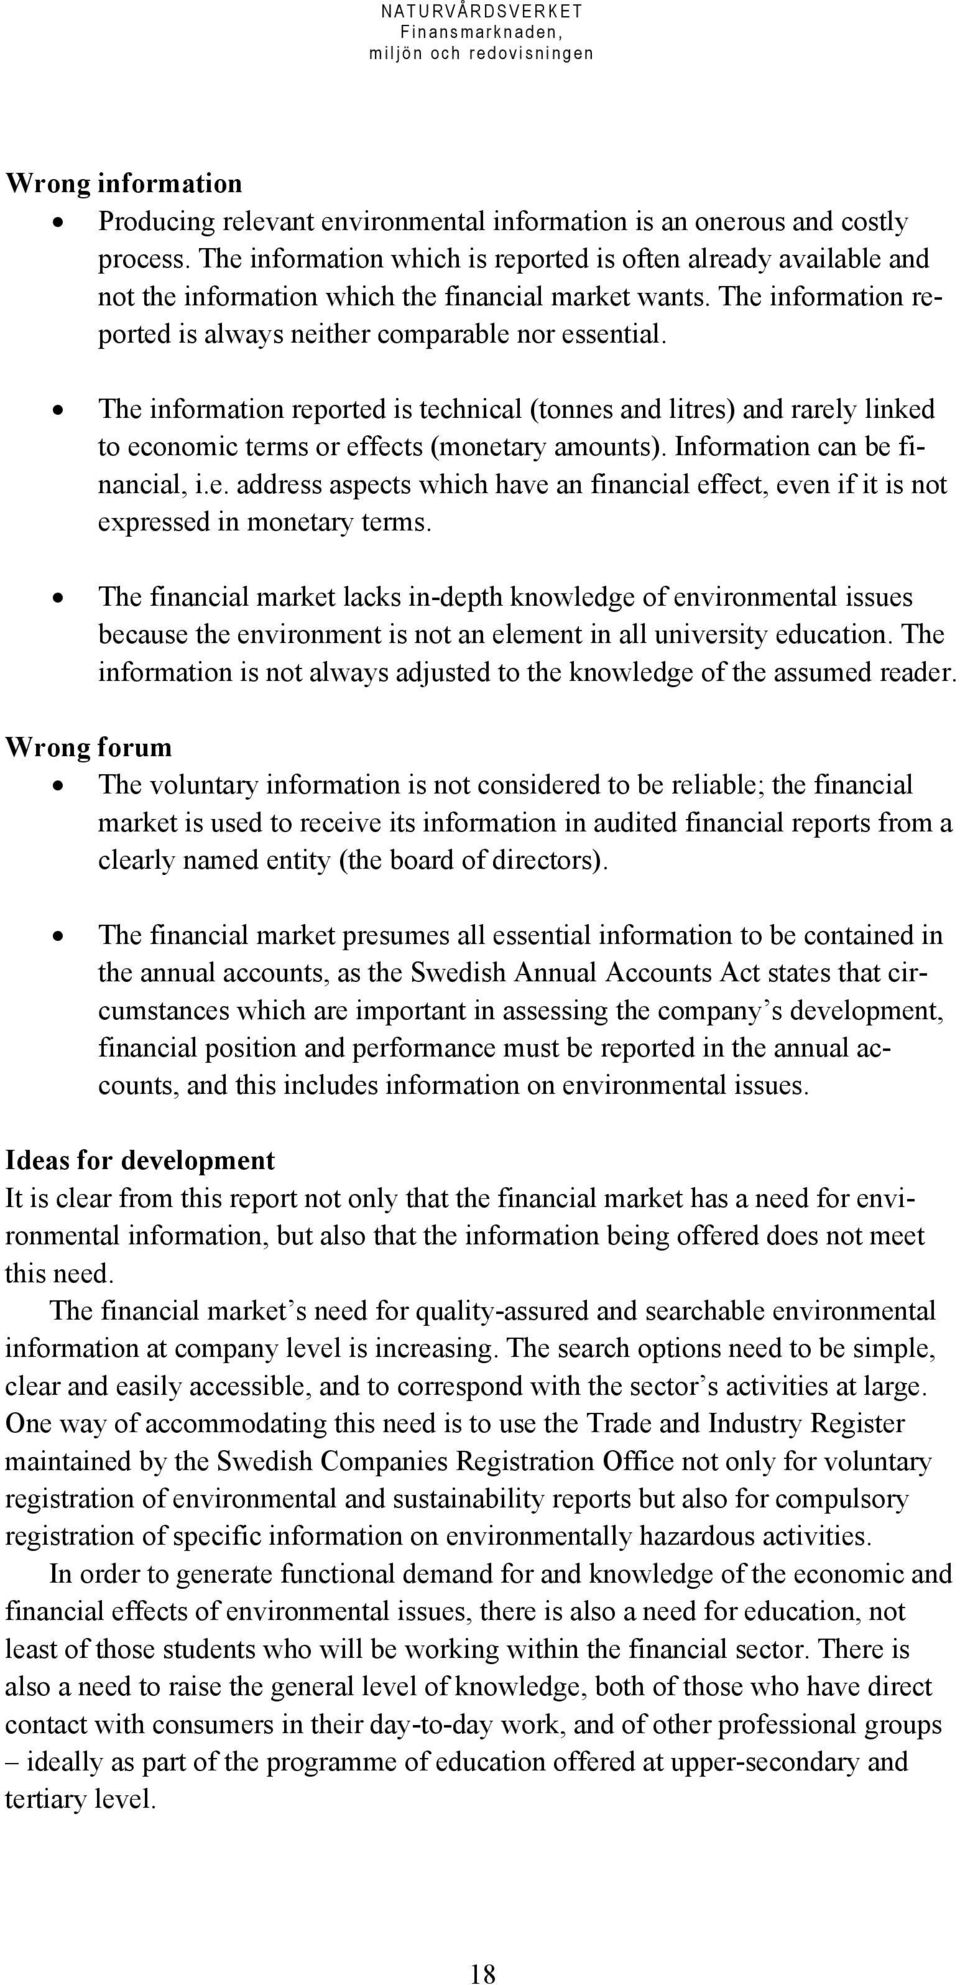 The information reported is technical (tonnes and litres) and rarely linked to economic terms or effects (monetary amounts). Information can be financial, i.e. address aspects which have an financial effect, even if it is not expressed in monetary terms.